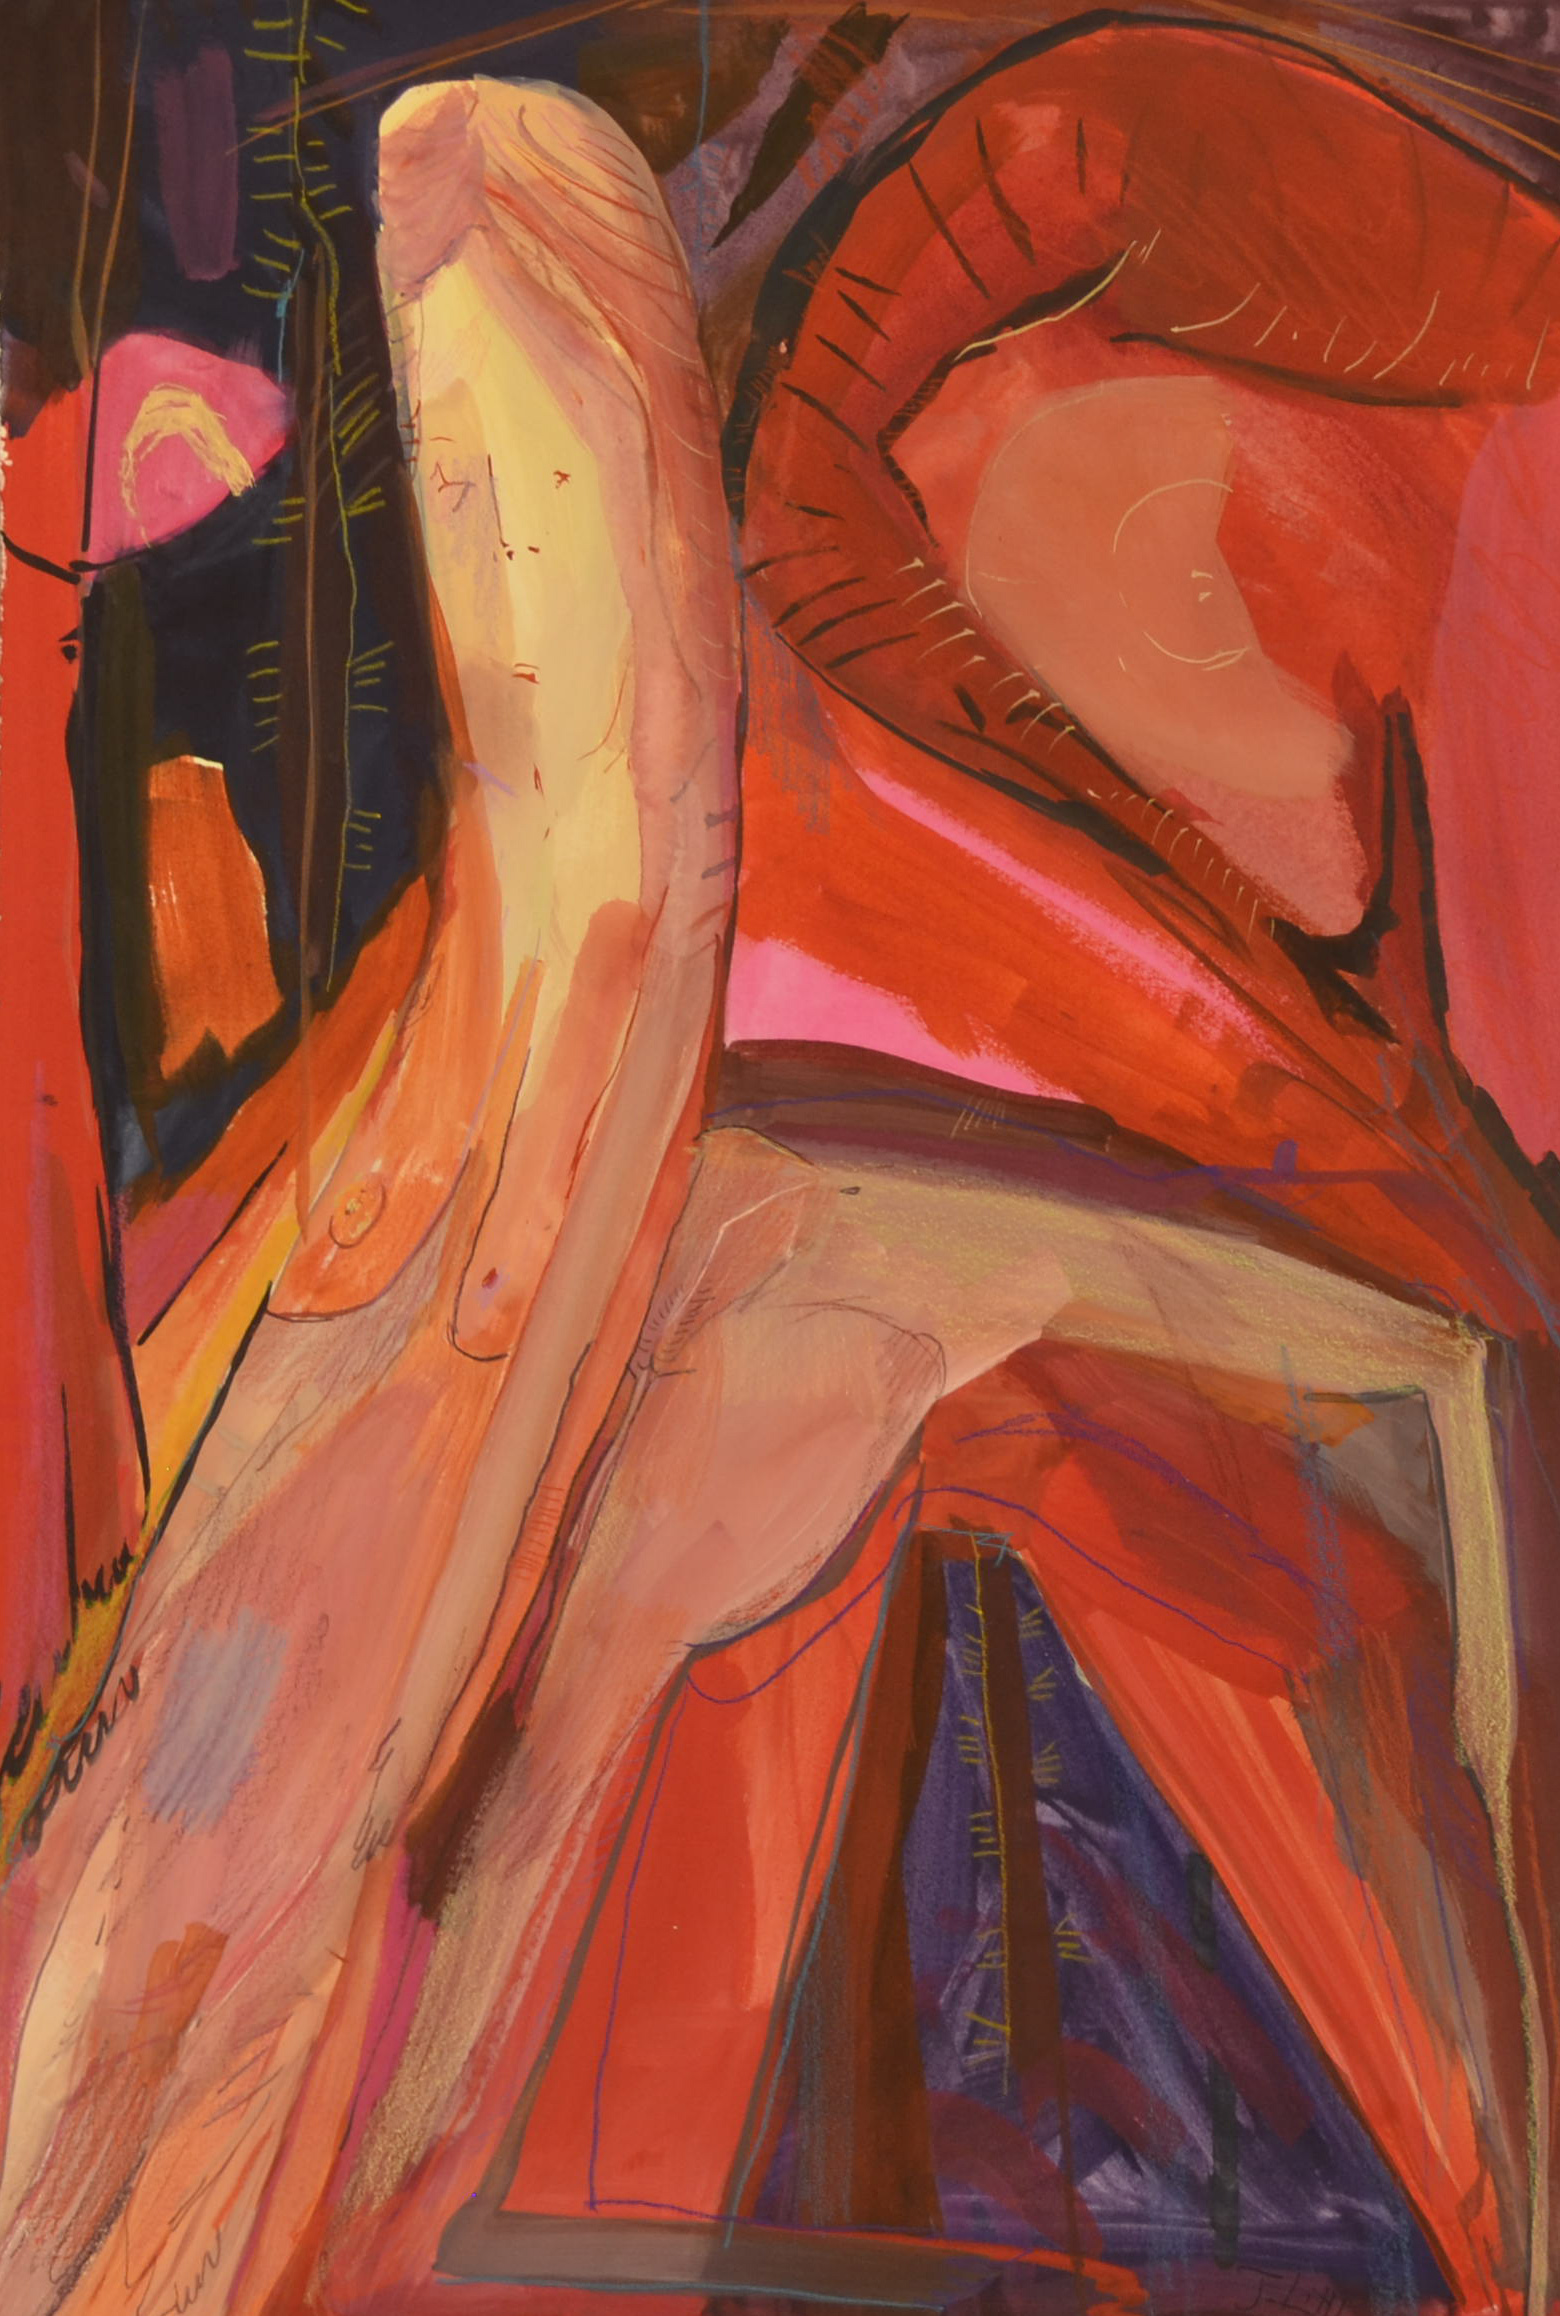 Red Figure,15 x 22 inches, watercolor and colored pencil on paper,2014.